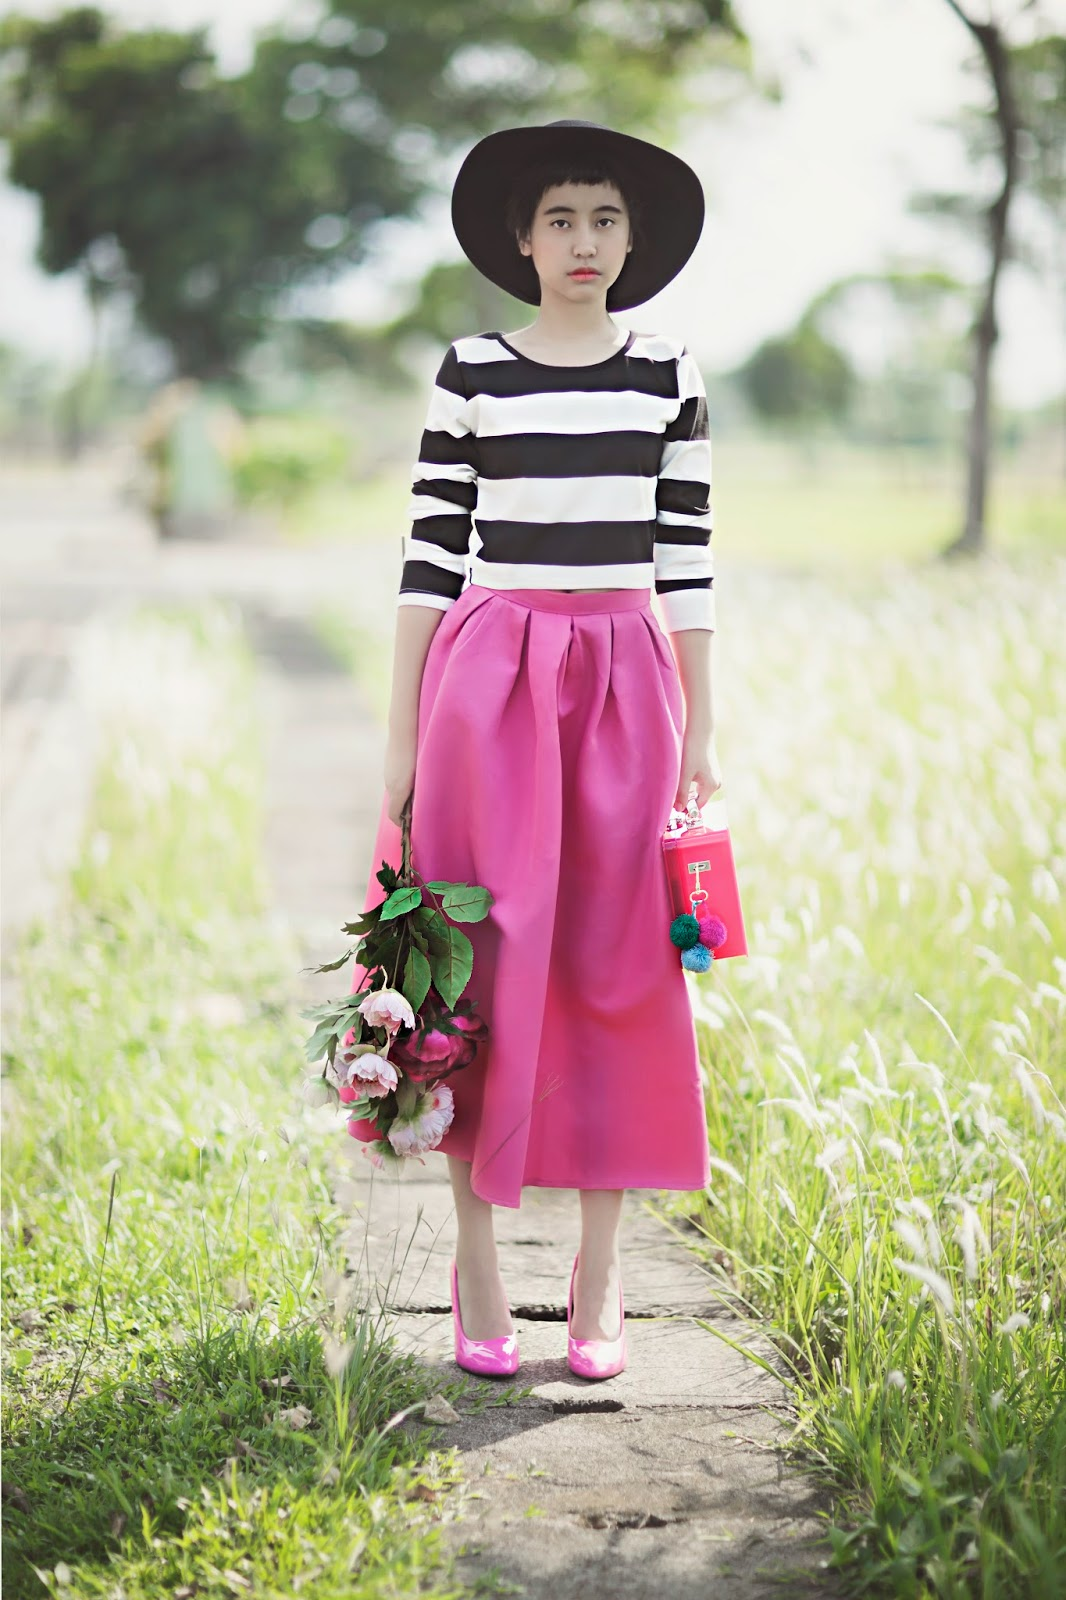 http://www.sheinside.com/Black-White-Long-Sleeve-Striped-Top-With-Purple-Skirt-p-184049-cat-1780.html#goods_description_top